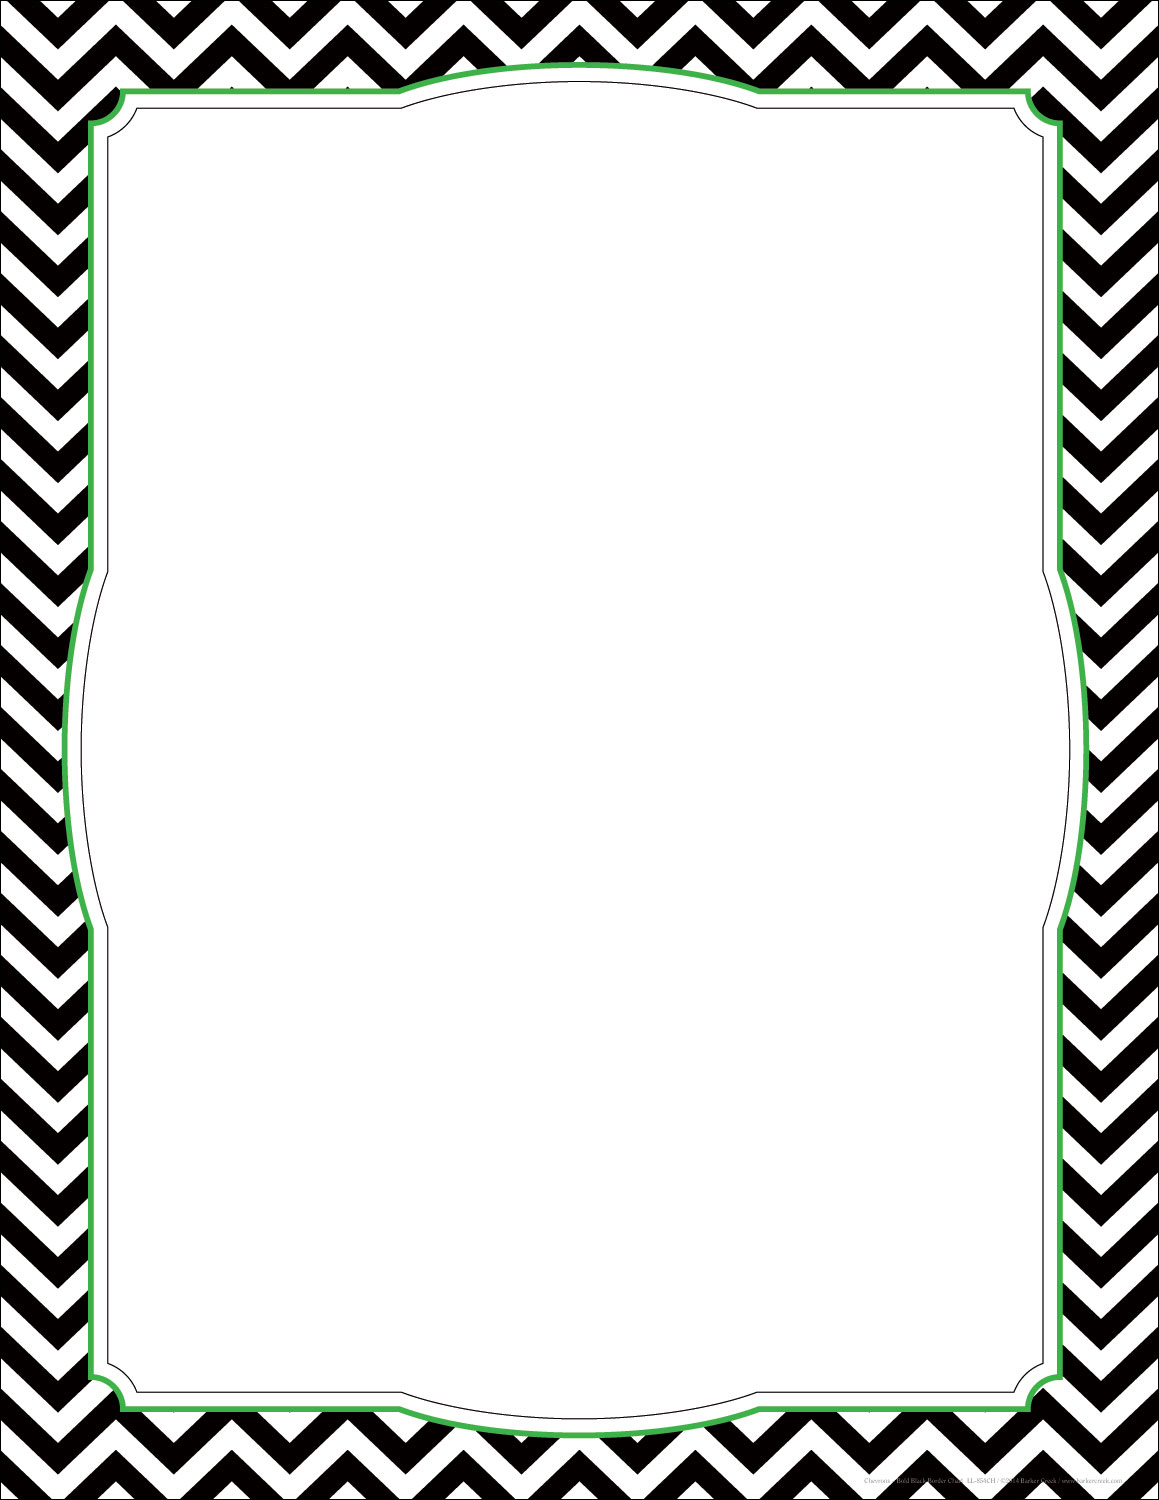 6 Best Images of Free Printable Chevron Border Template